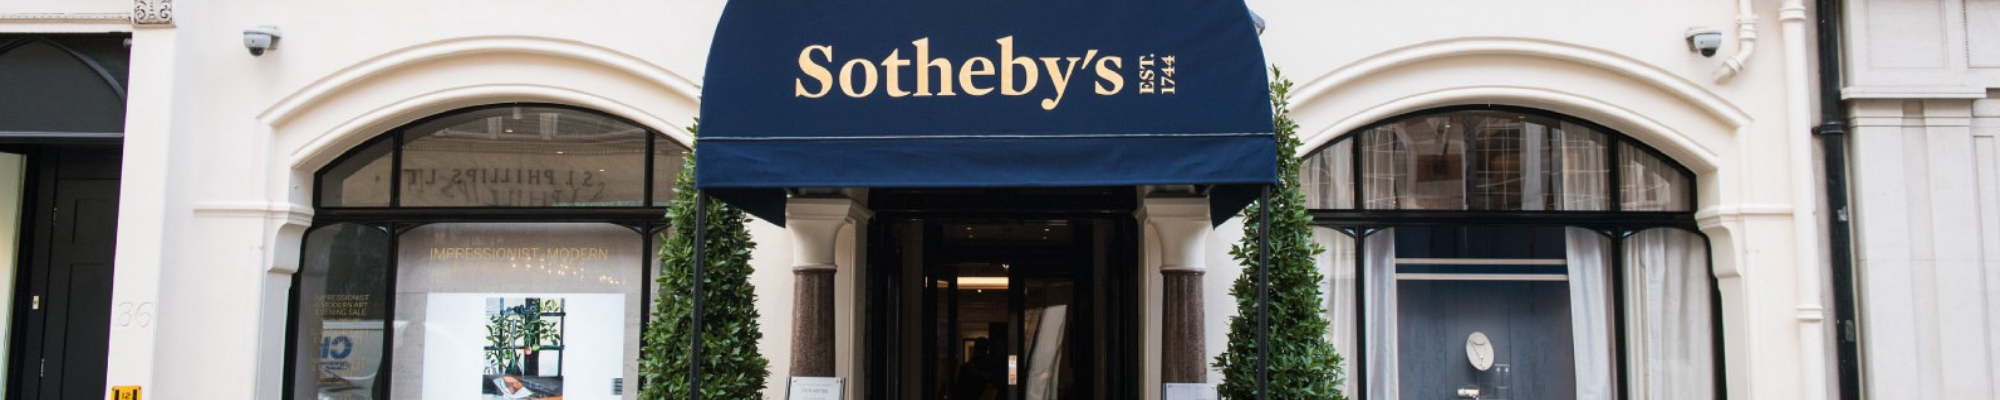 Sotheby's Bespoke Project Management